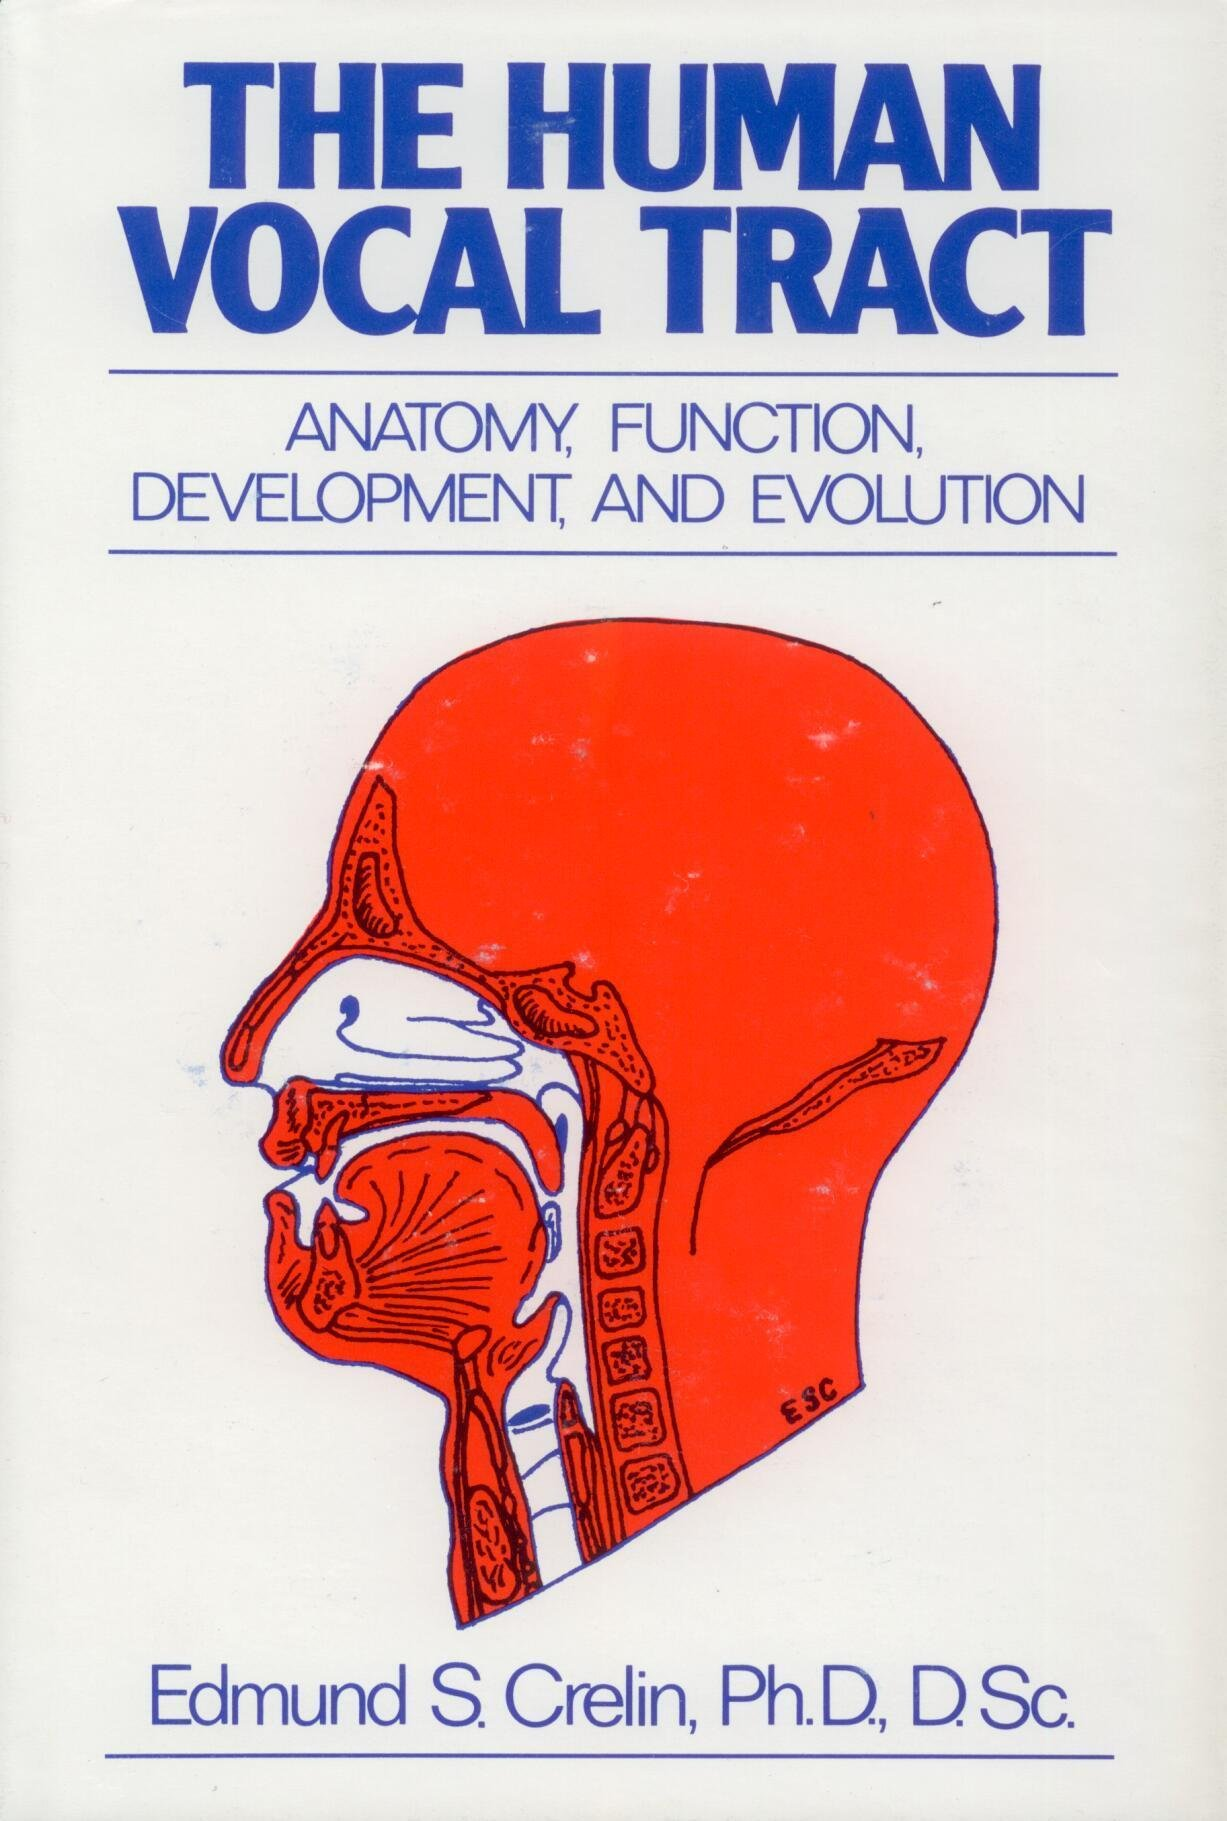 The human vocal tract: Anatomy, function, development, and evolution ...